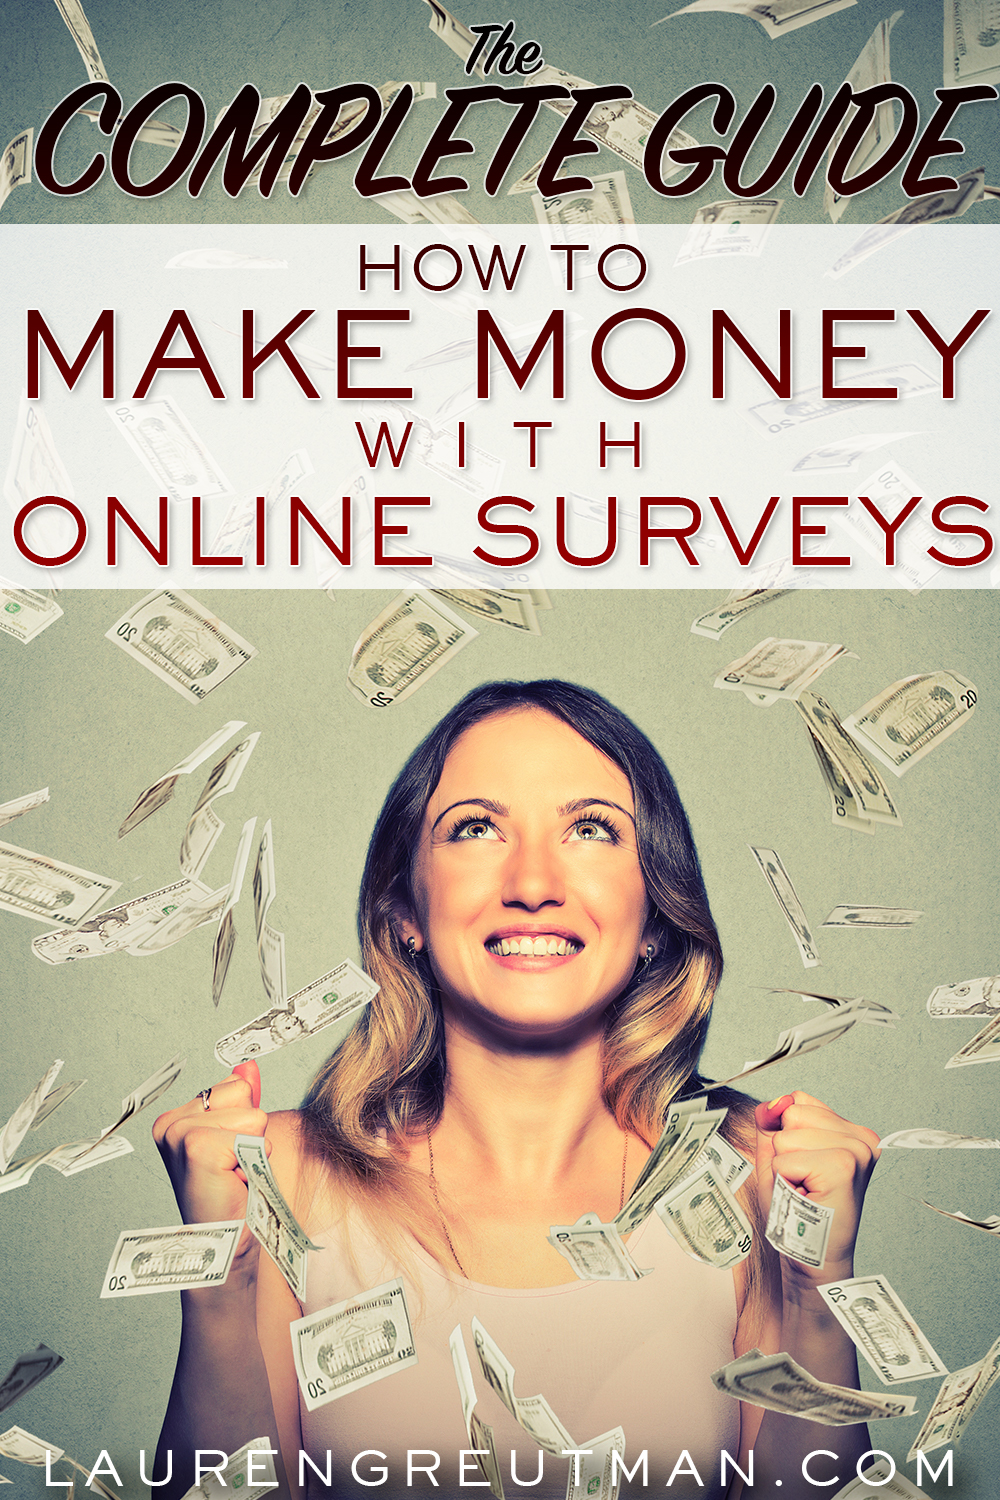 Are you interested in knowing how to Make Money Doing Surveys? This post breaks it down for you step by step so that you can make a lot of money this year!